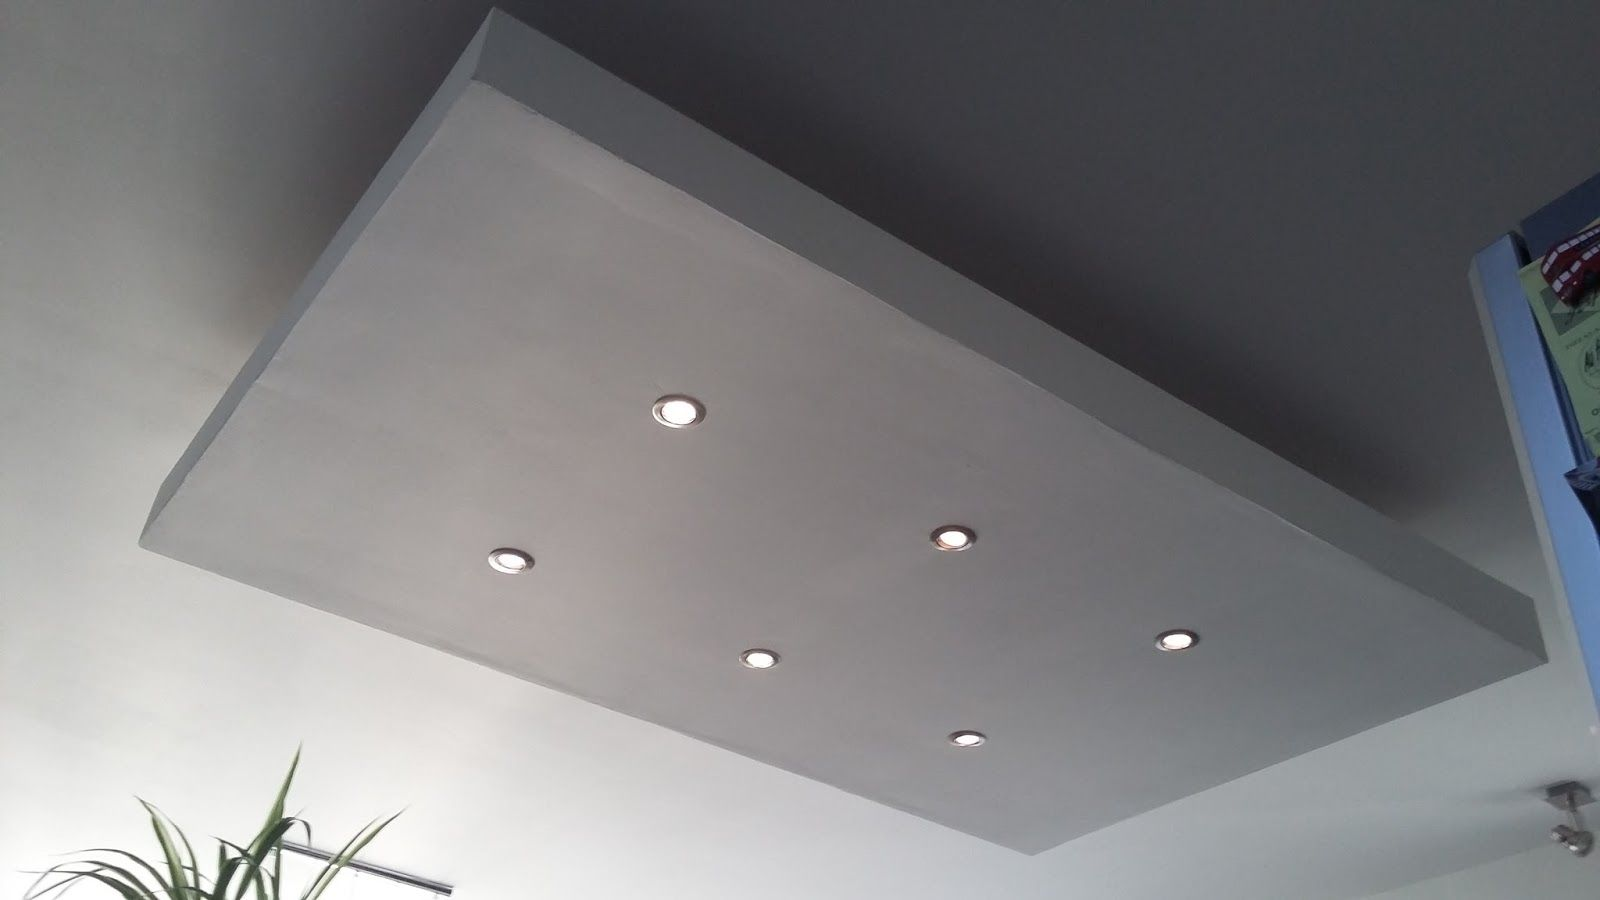 D roch plafond descendu suspendu ilot central for Caisson lumineux plafond